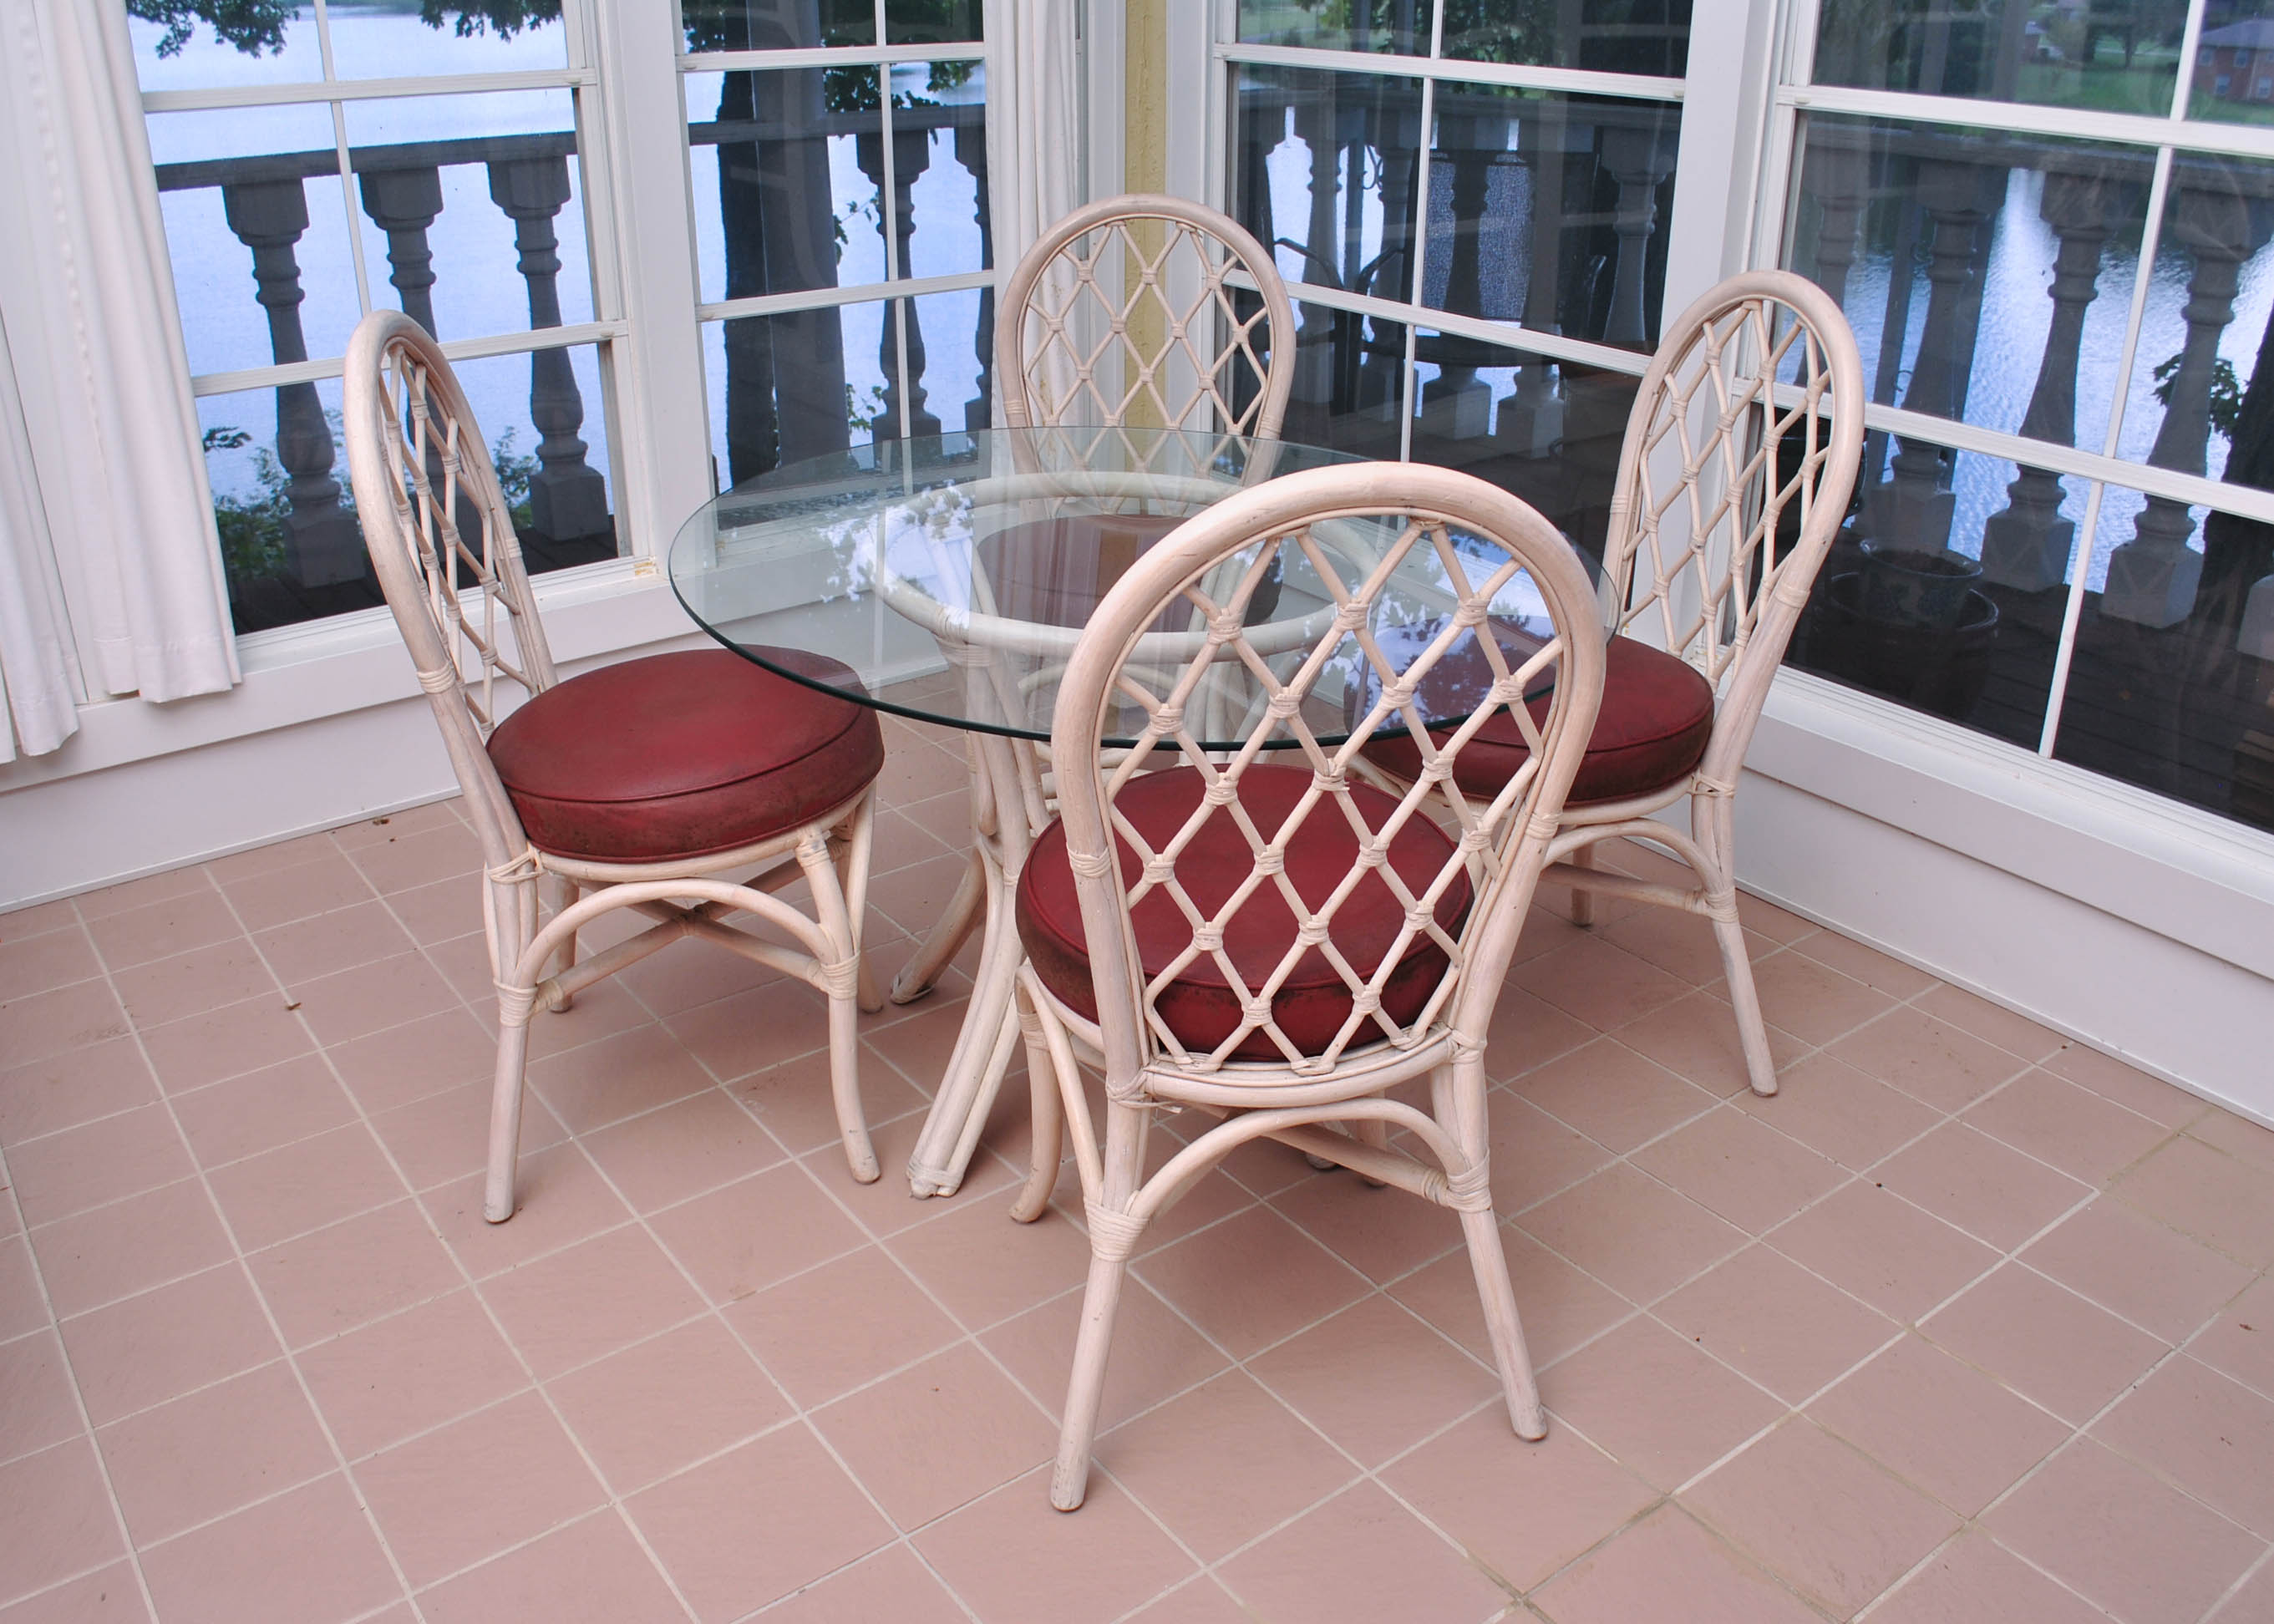 steel vinyl chair tufted leather club clark casual rattan round glass top table and four chairs : ebth